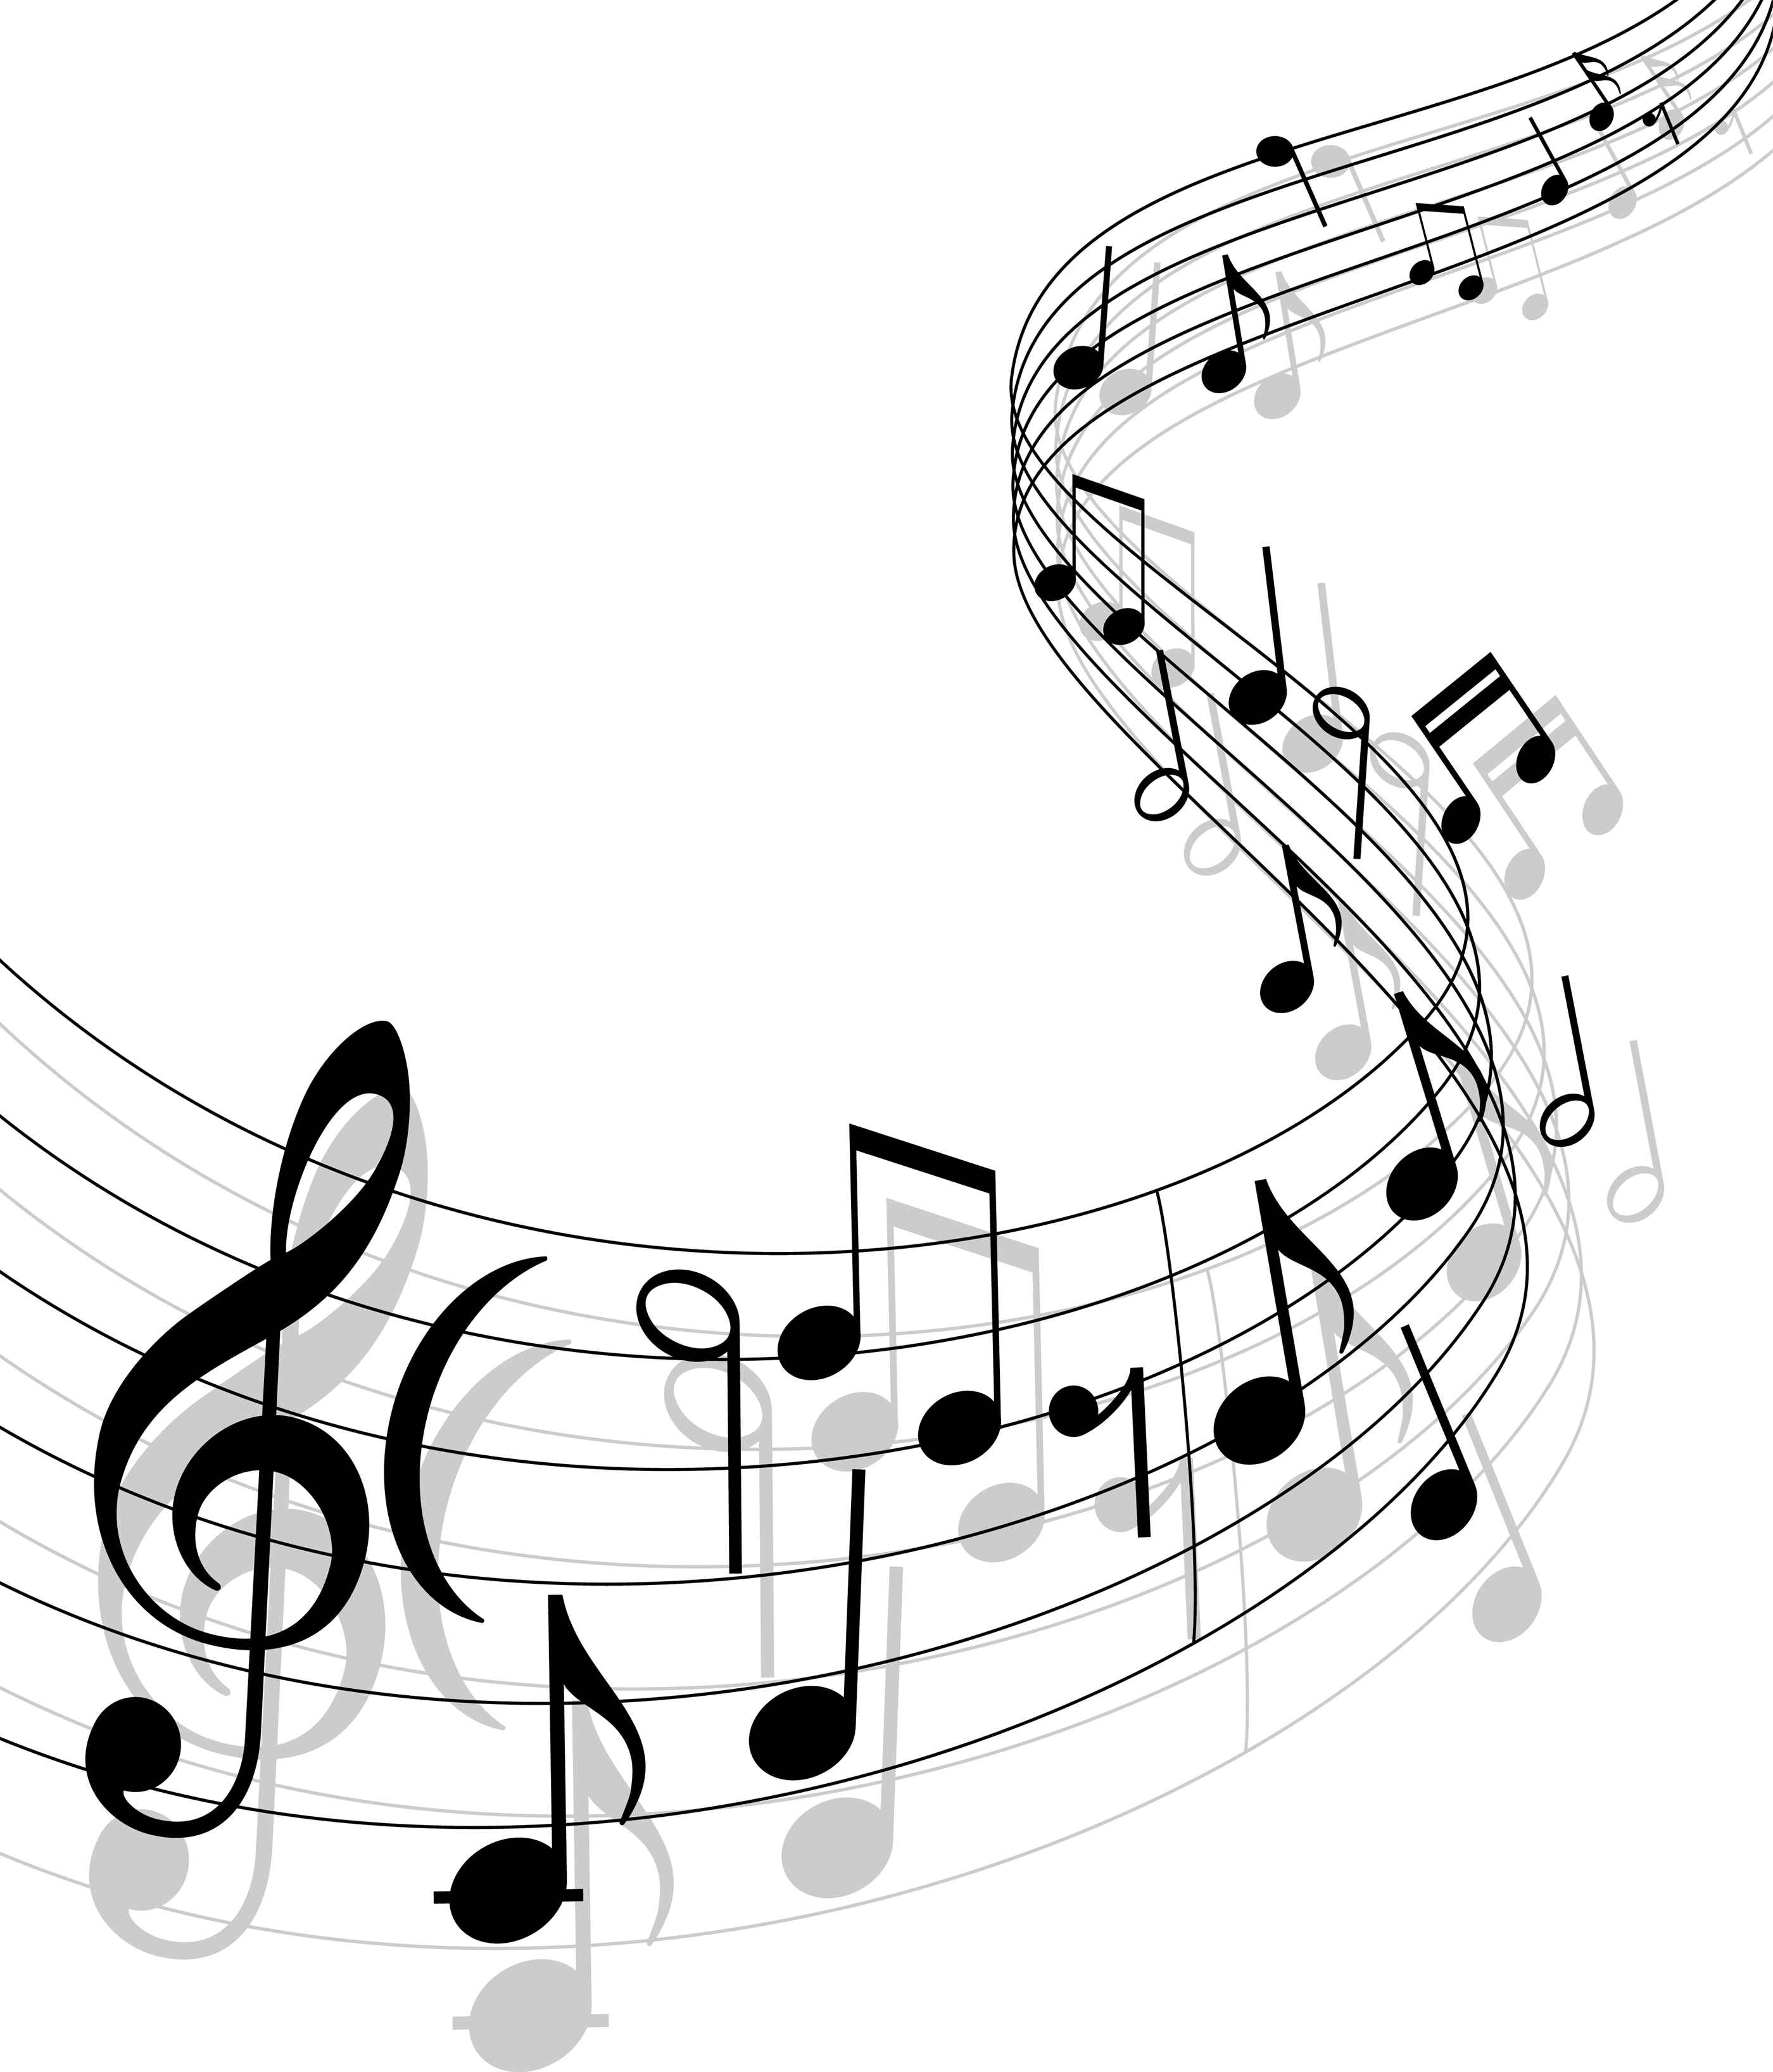 Drawn music notes muscial Clipart Music Art Clip Image